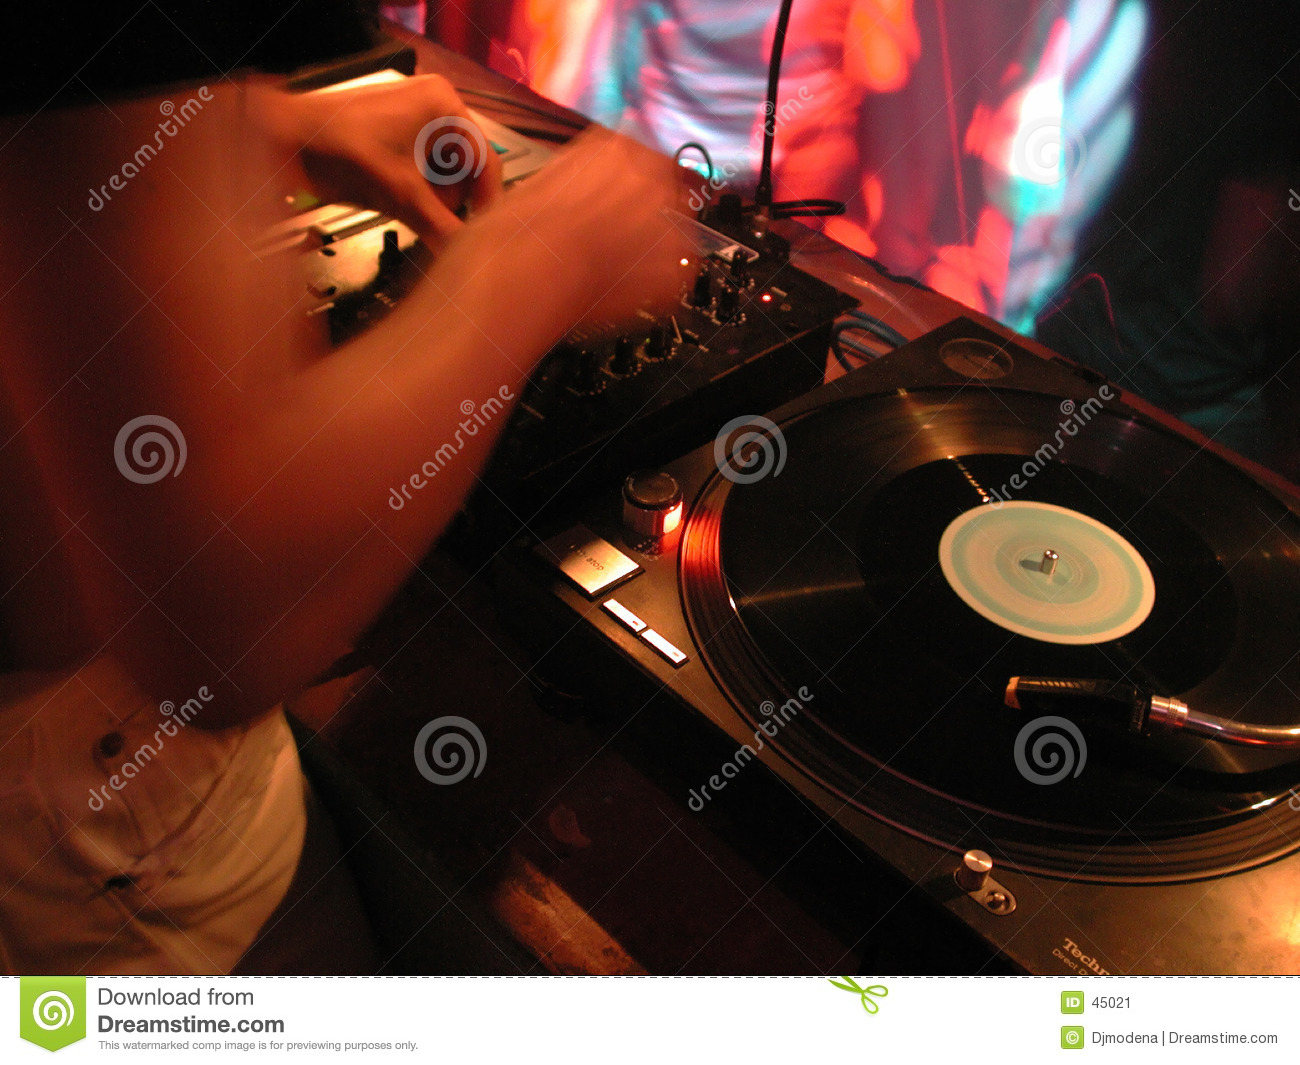 Dj at turntables